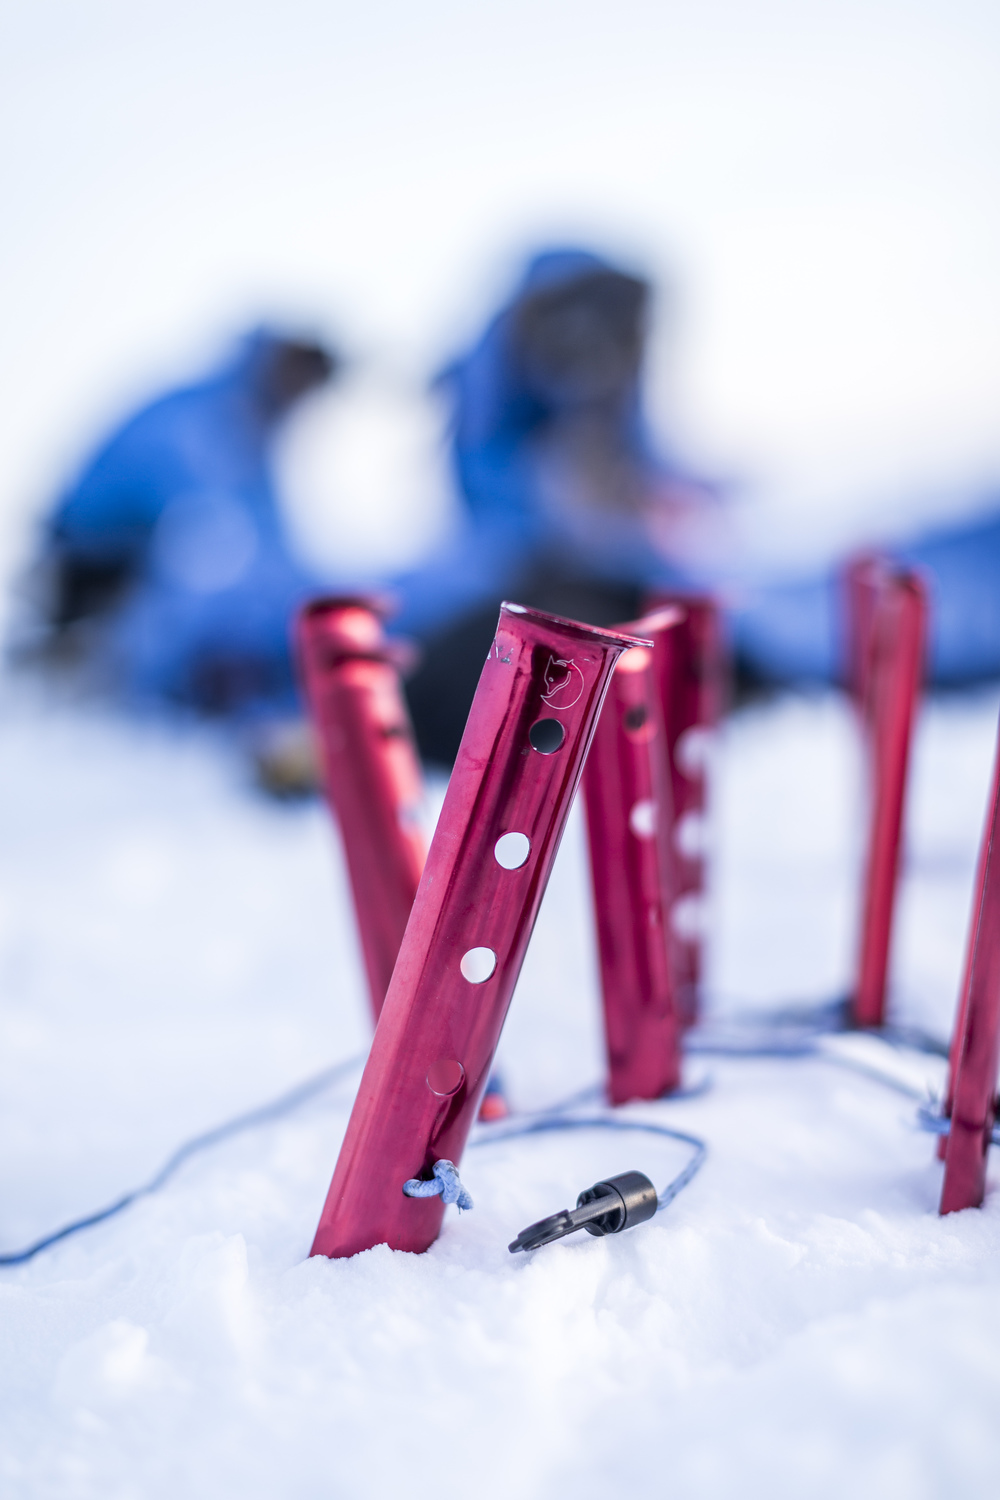 In Råstu's high wind conditions, we use T-anchors to secure the snow pegs. Digging them out of the densely packed snow in the morning, while taking care not to damage the pegs with the aluminum shovel, is a special treat. (Photo by Håkan Wike for Fjällräven International. All rights reserved.)